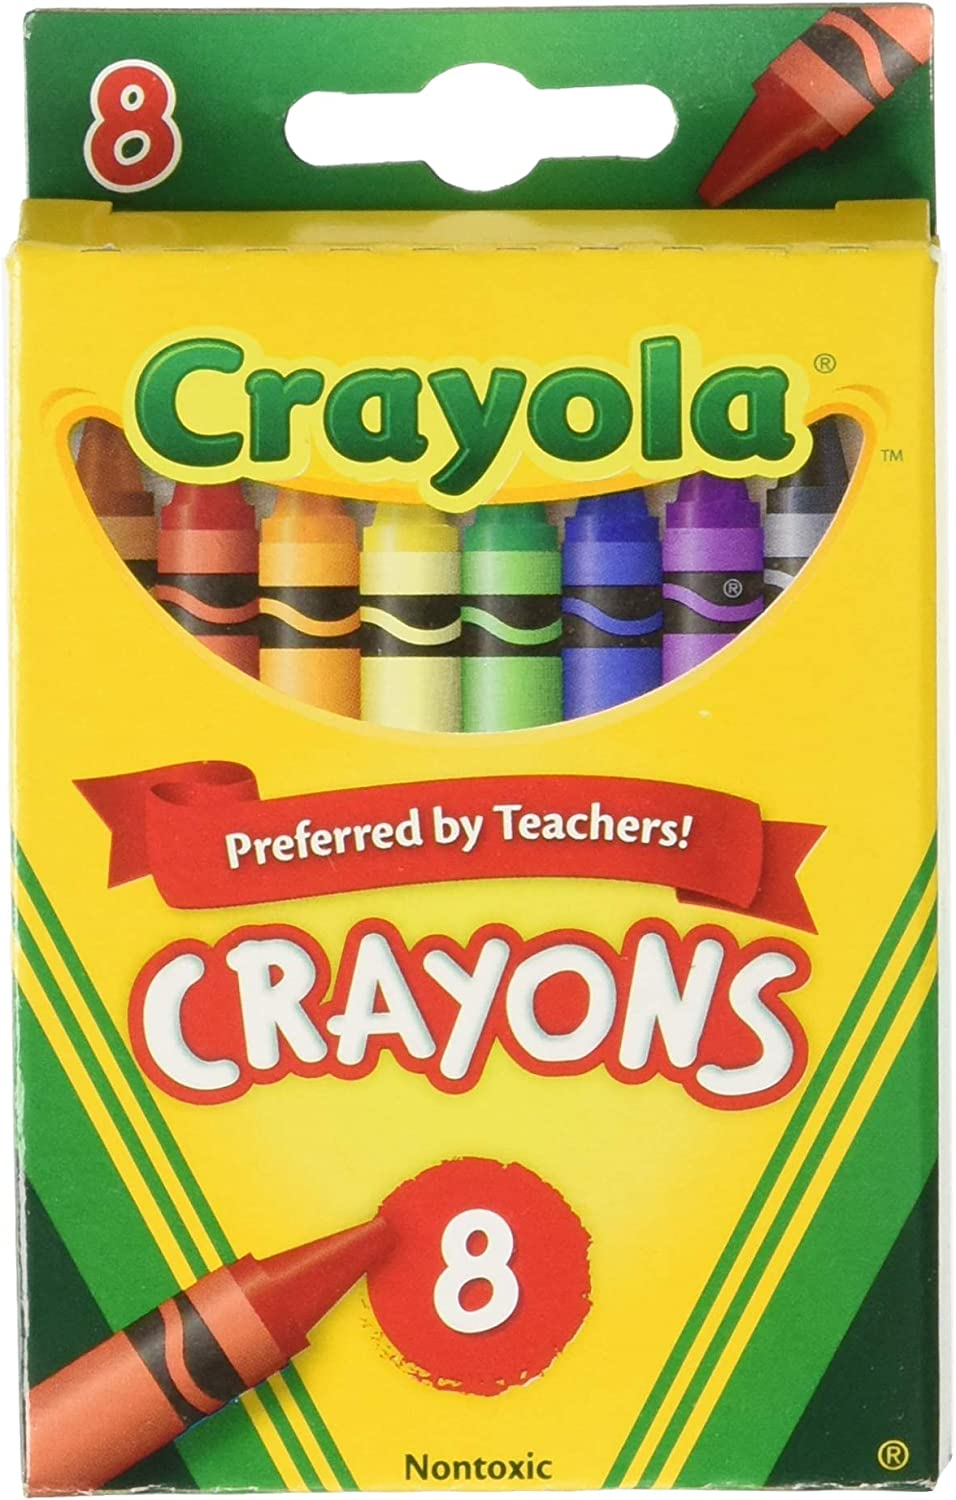 Crayola Max 88% OFF Crayons 8ct Pack 6 Assorted Max 74% OFF of